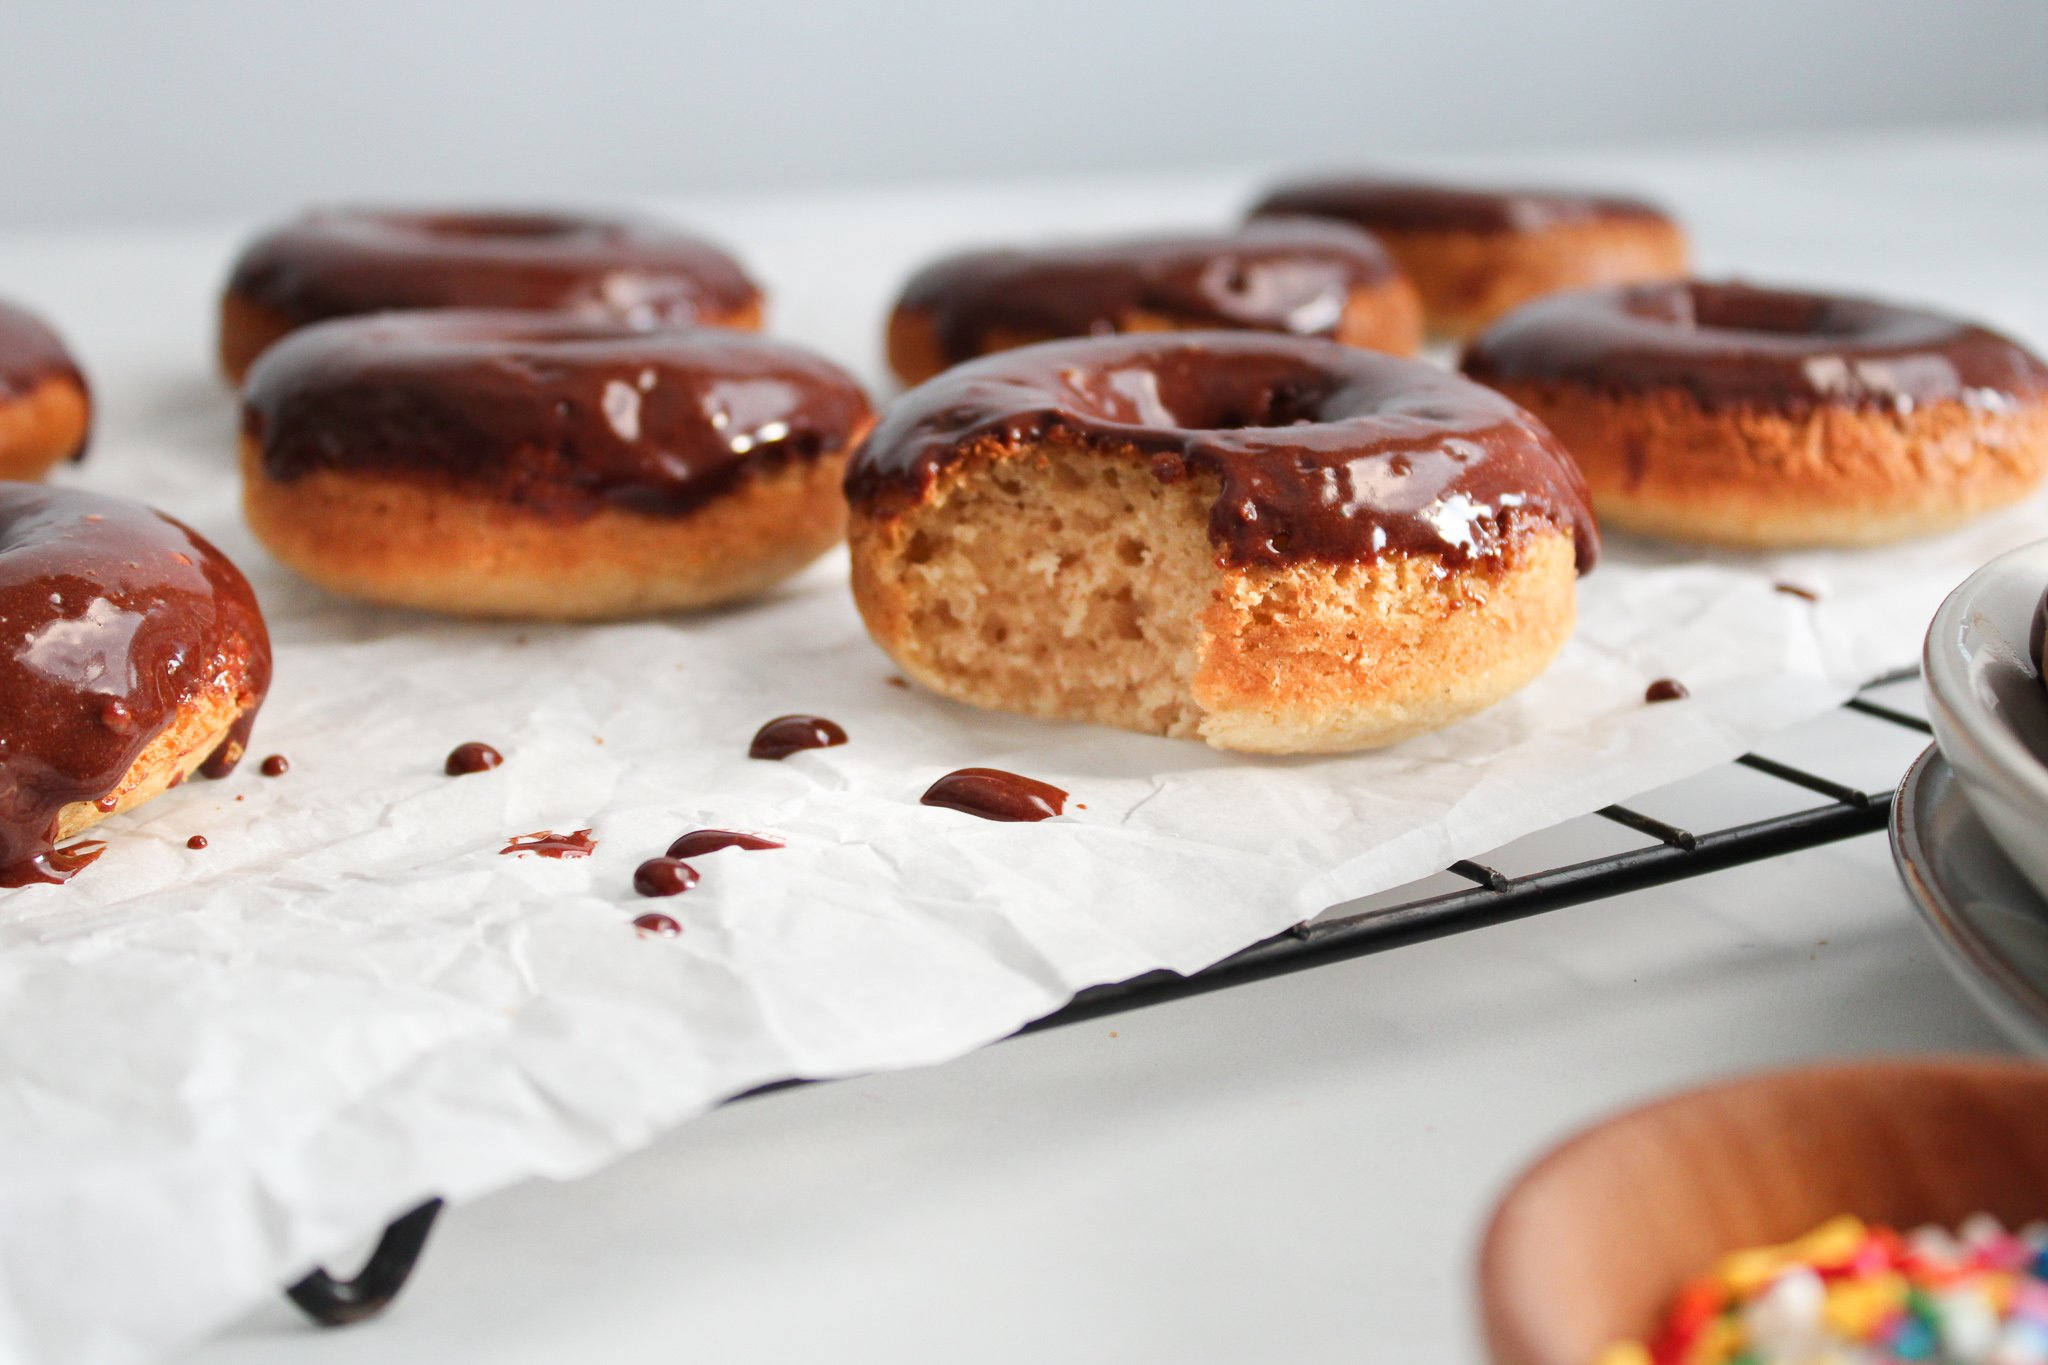 grain-free vanilla baked donuts with chocolate frosting sitting on parchment paper lined cooling rack with a bite taken out.